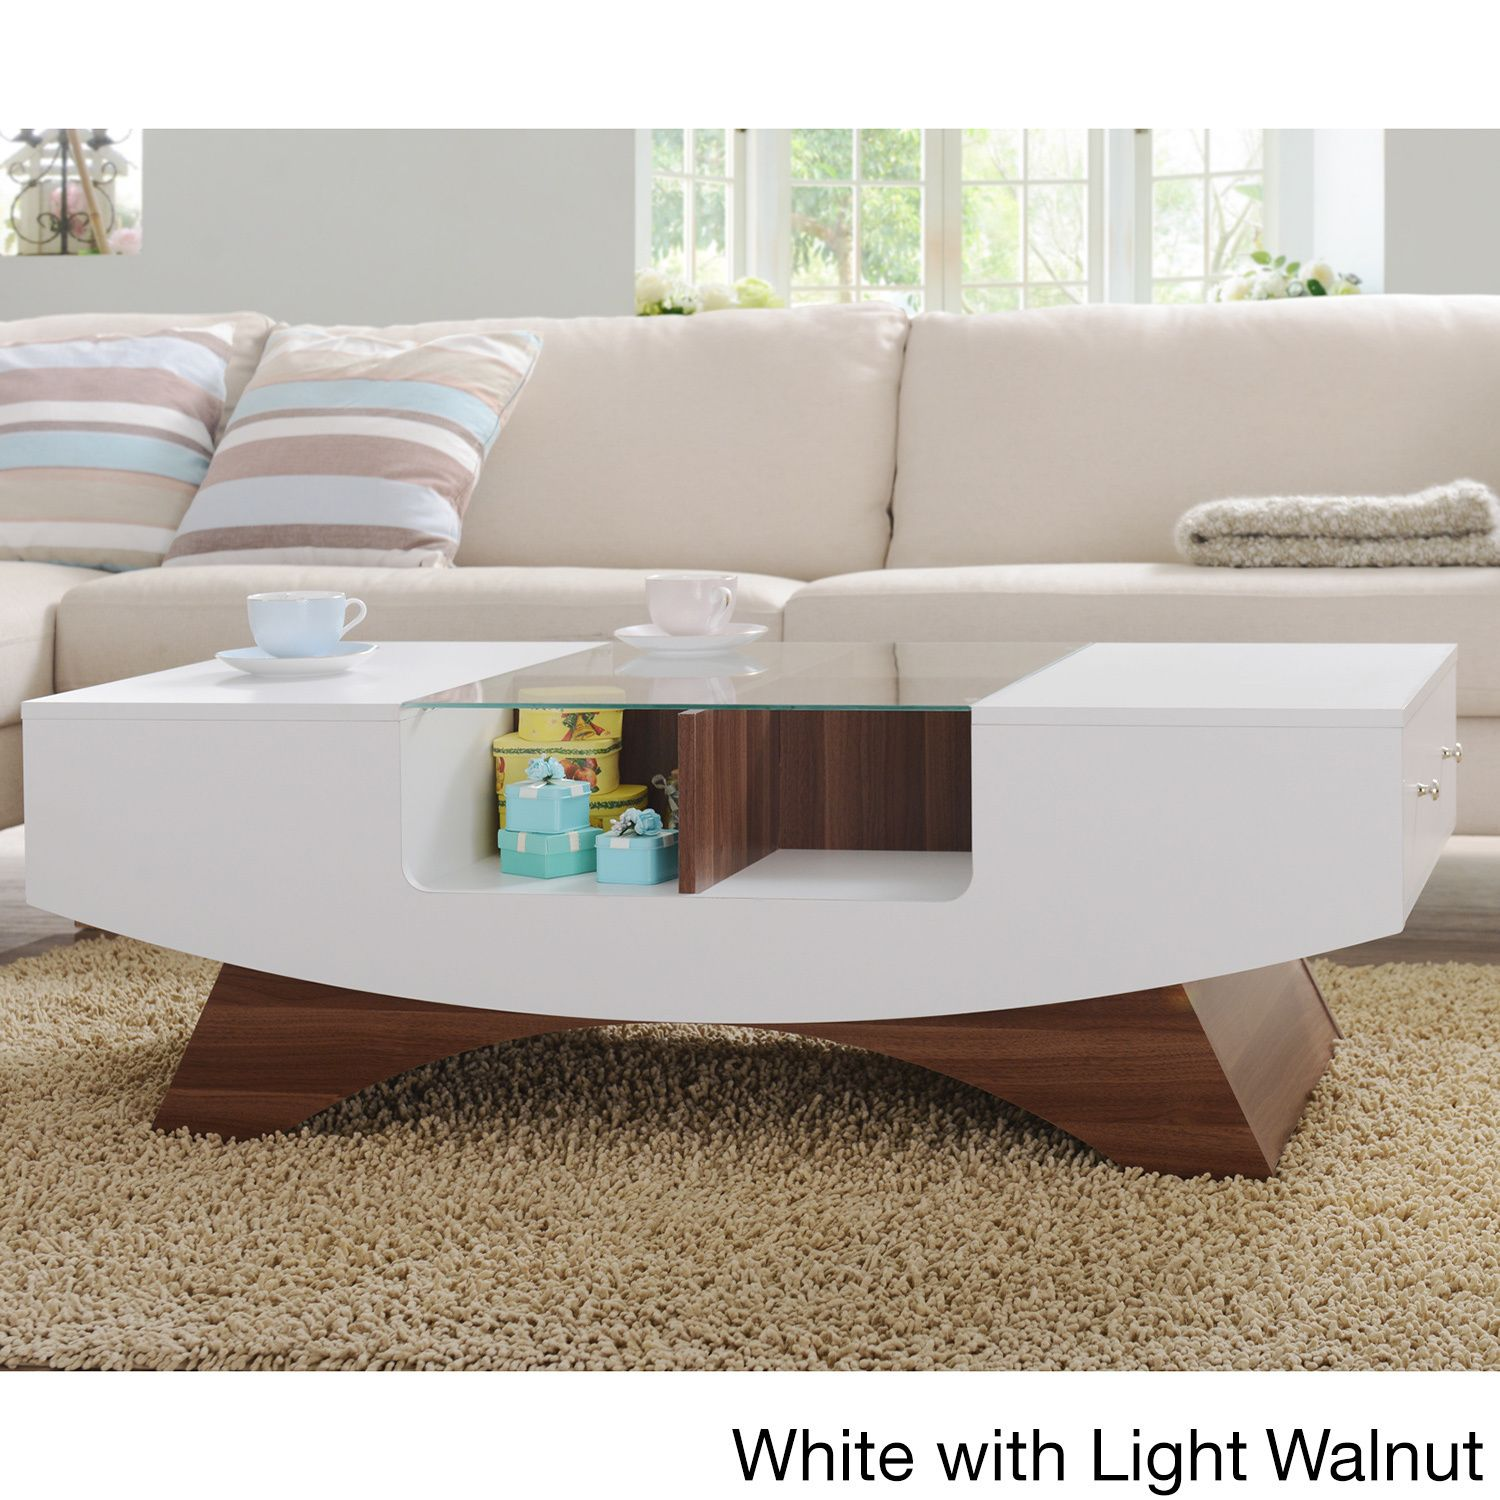 update your home with this modern coffee table featuring a unique